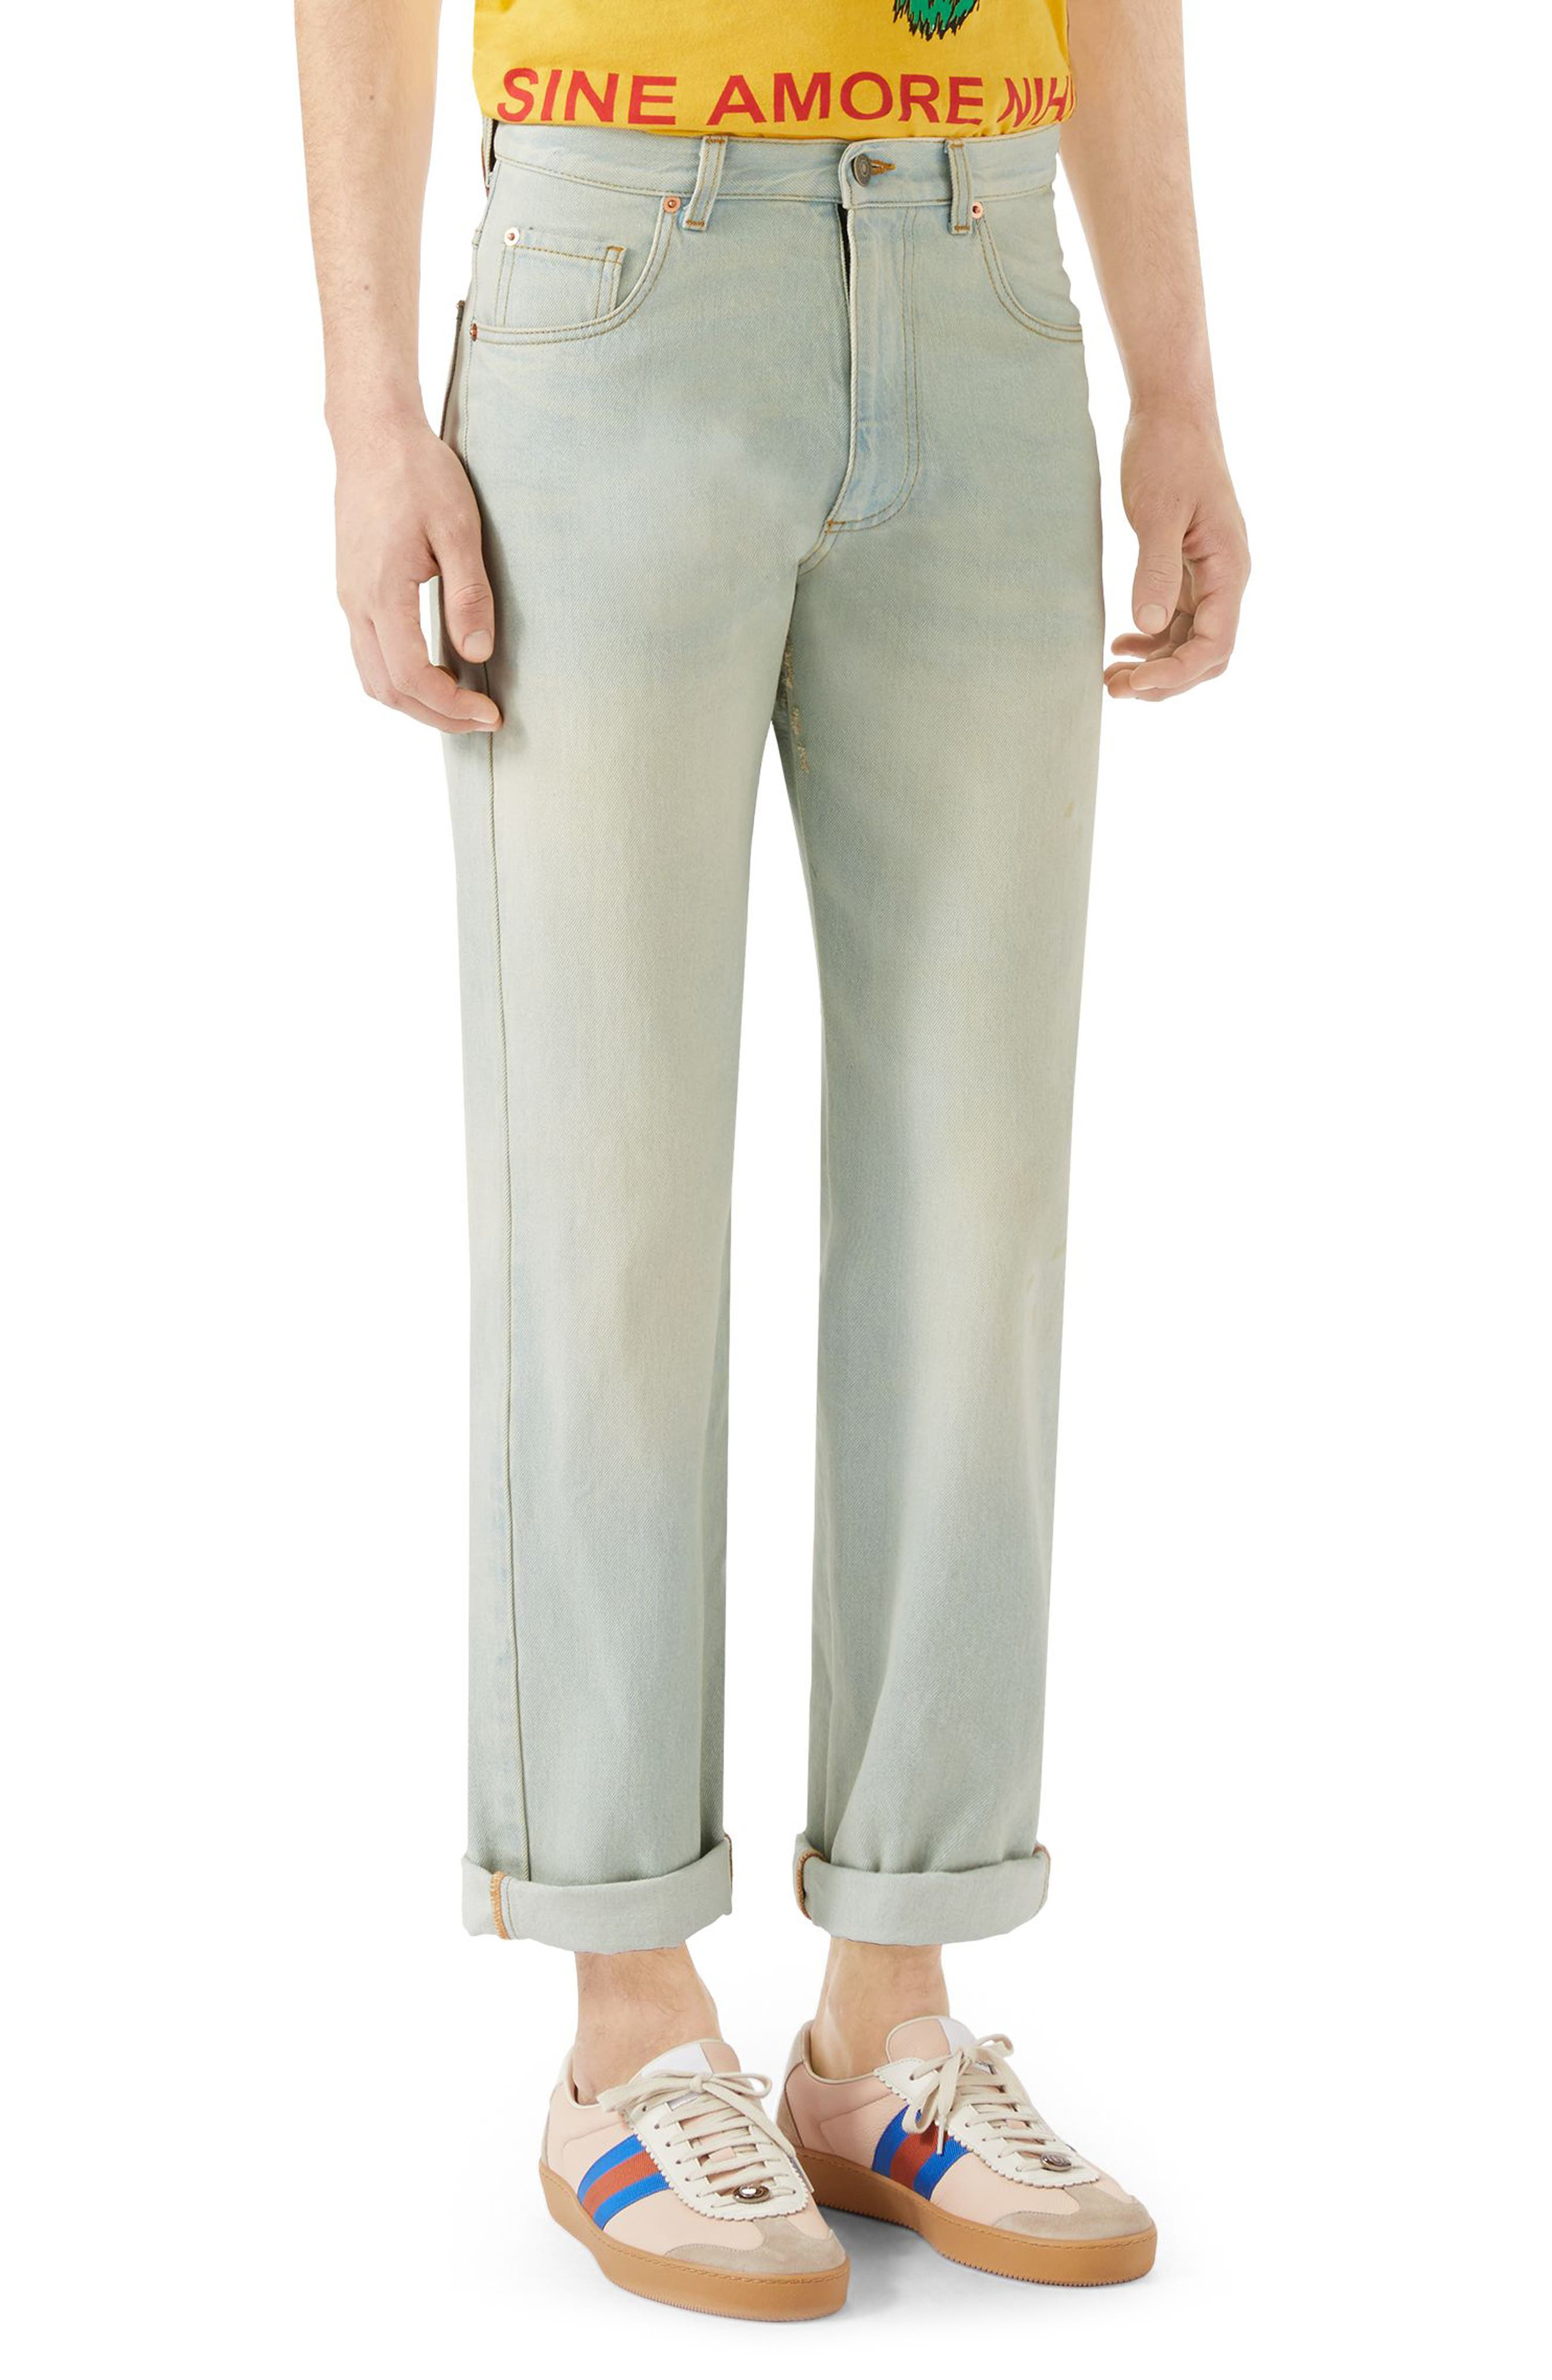 Bleach Washed Jeans,                         Main,                         color, LIGHT BLUE